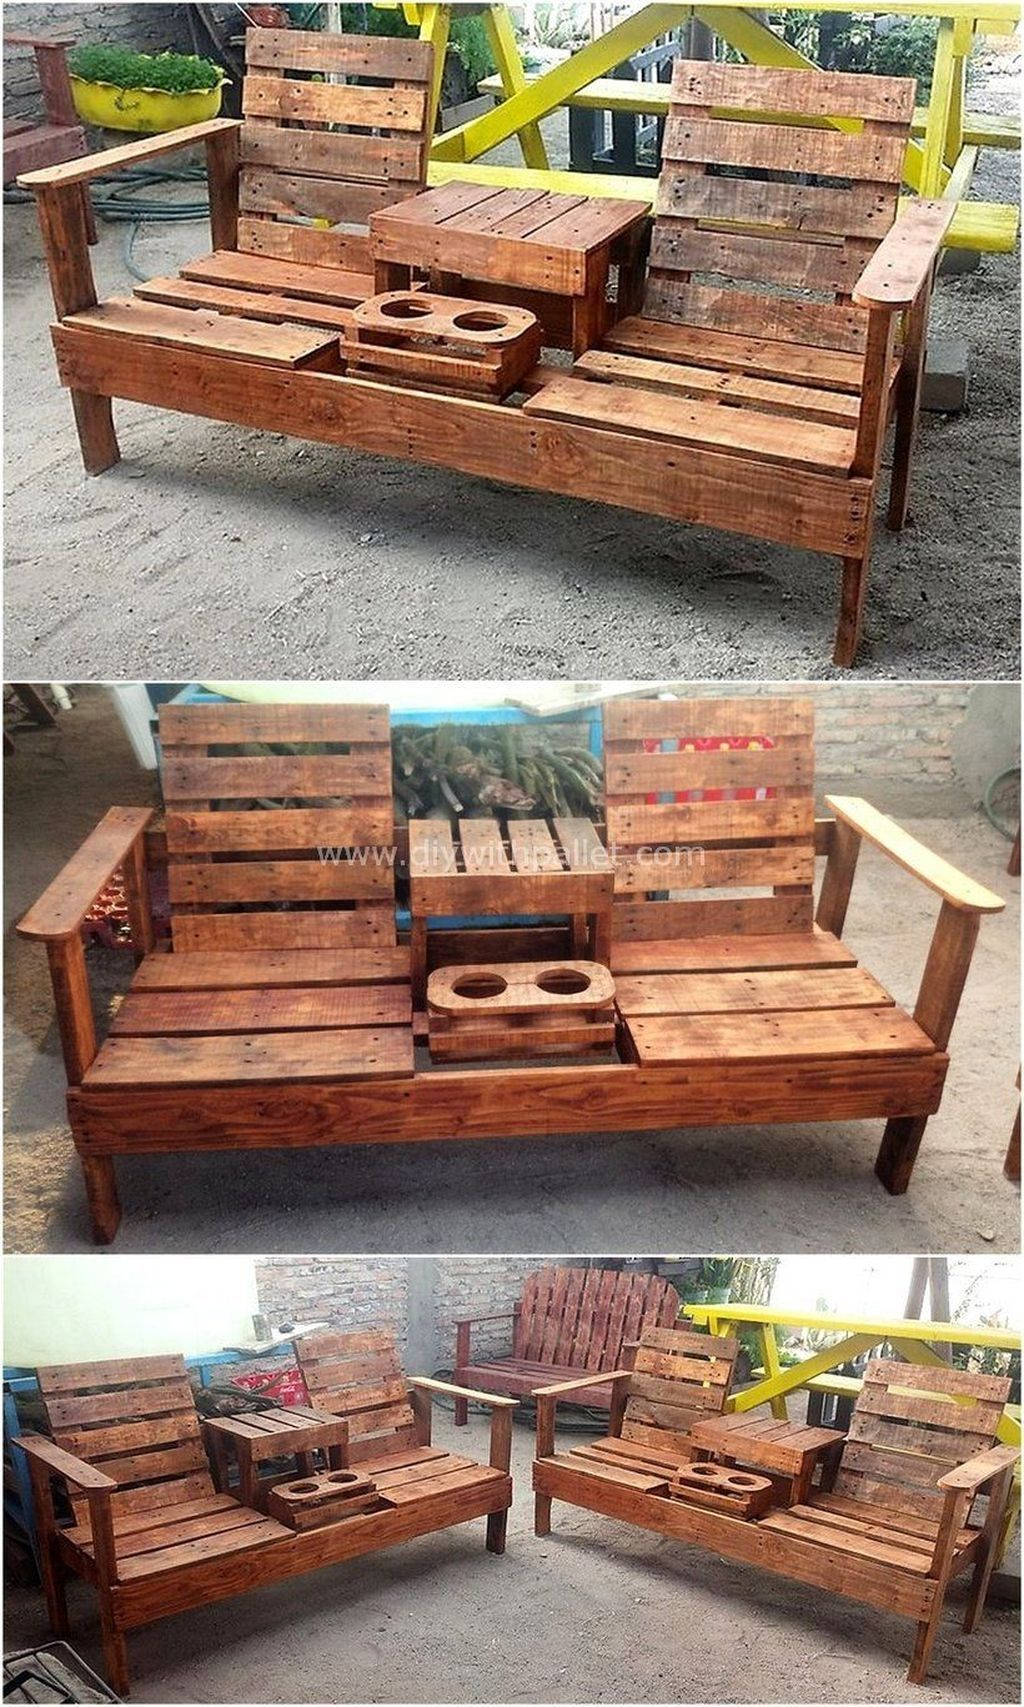 40 Creative Wood Pallet Ideas To Try Right Now With Images